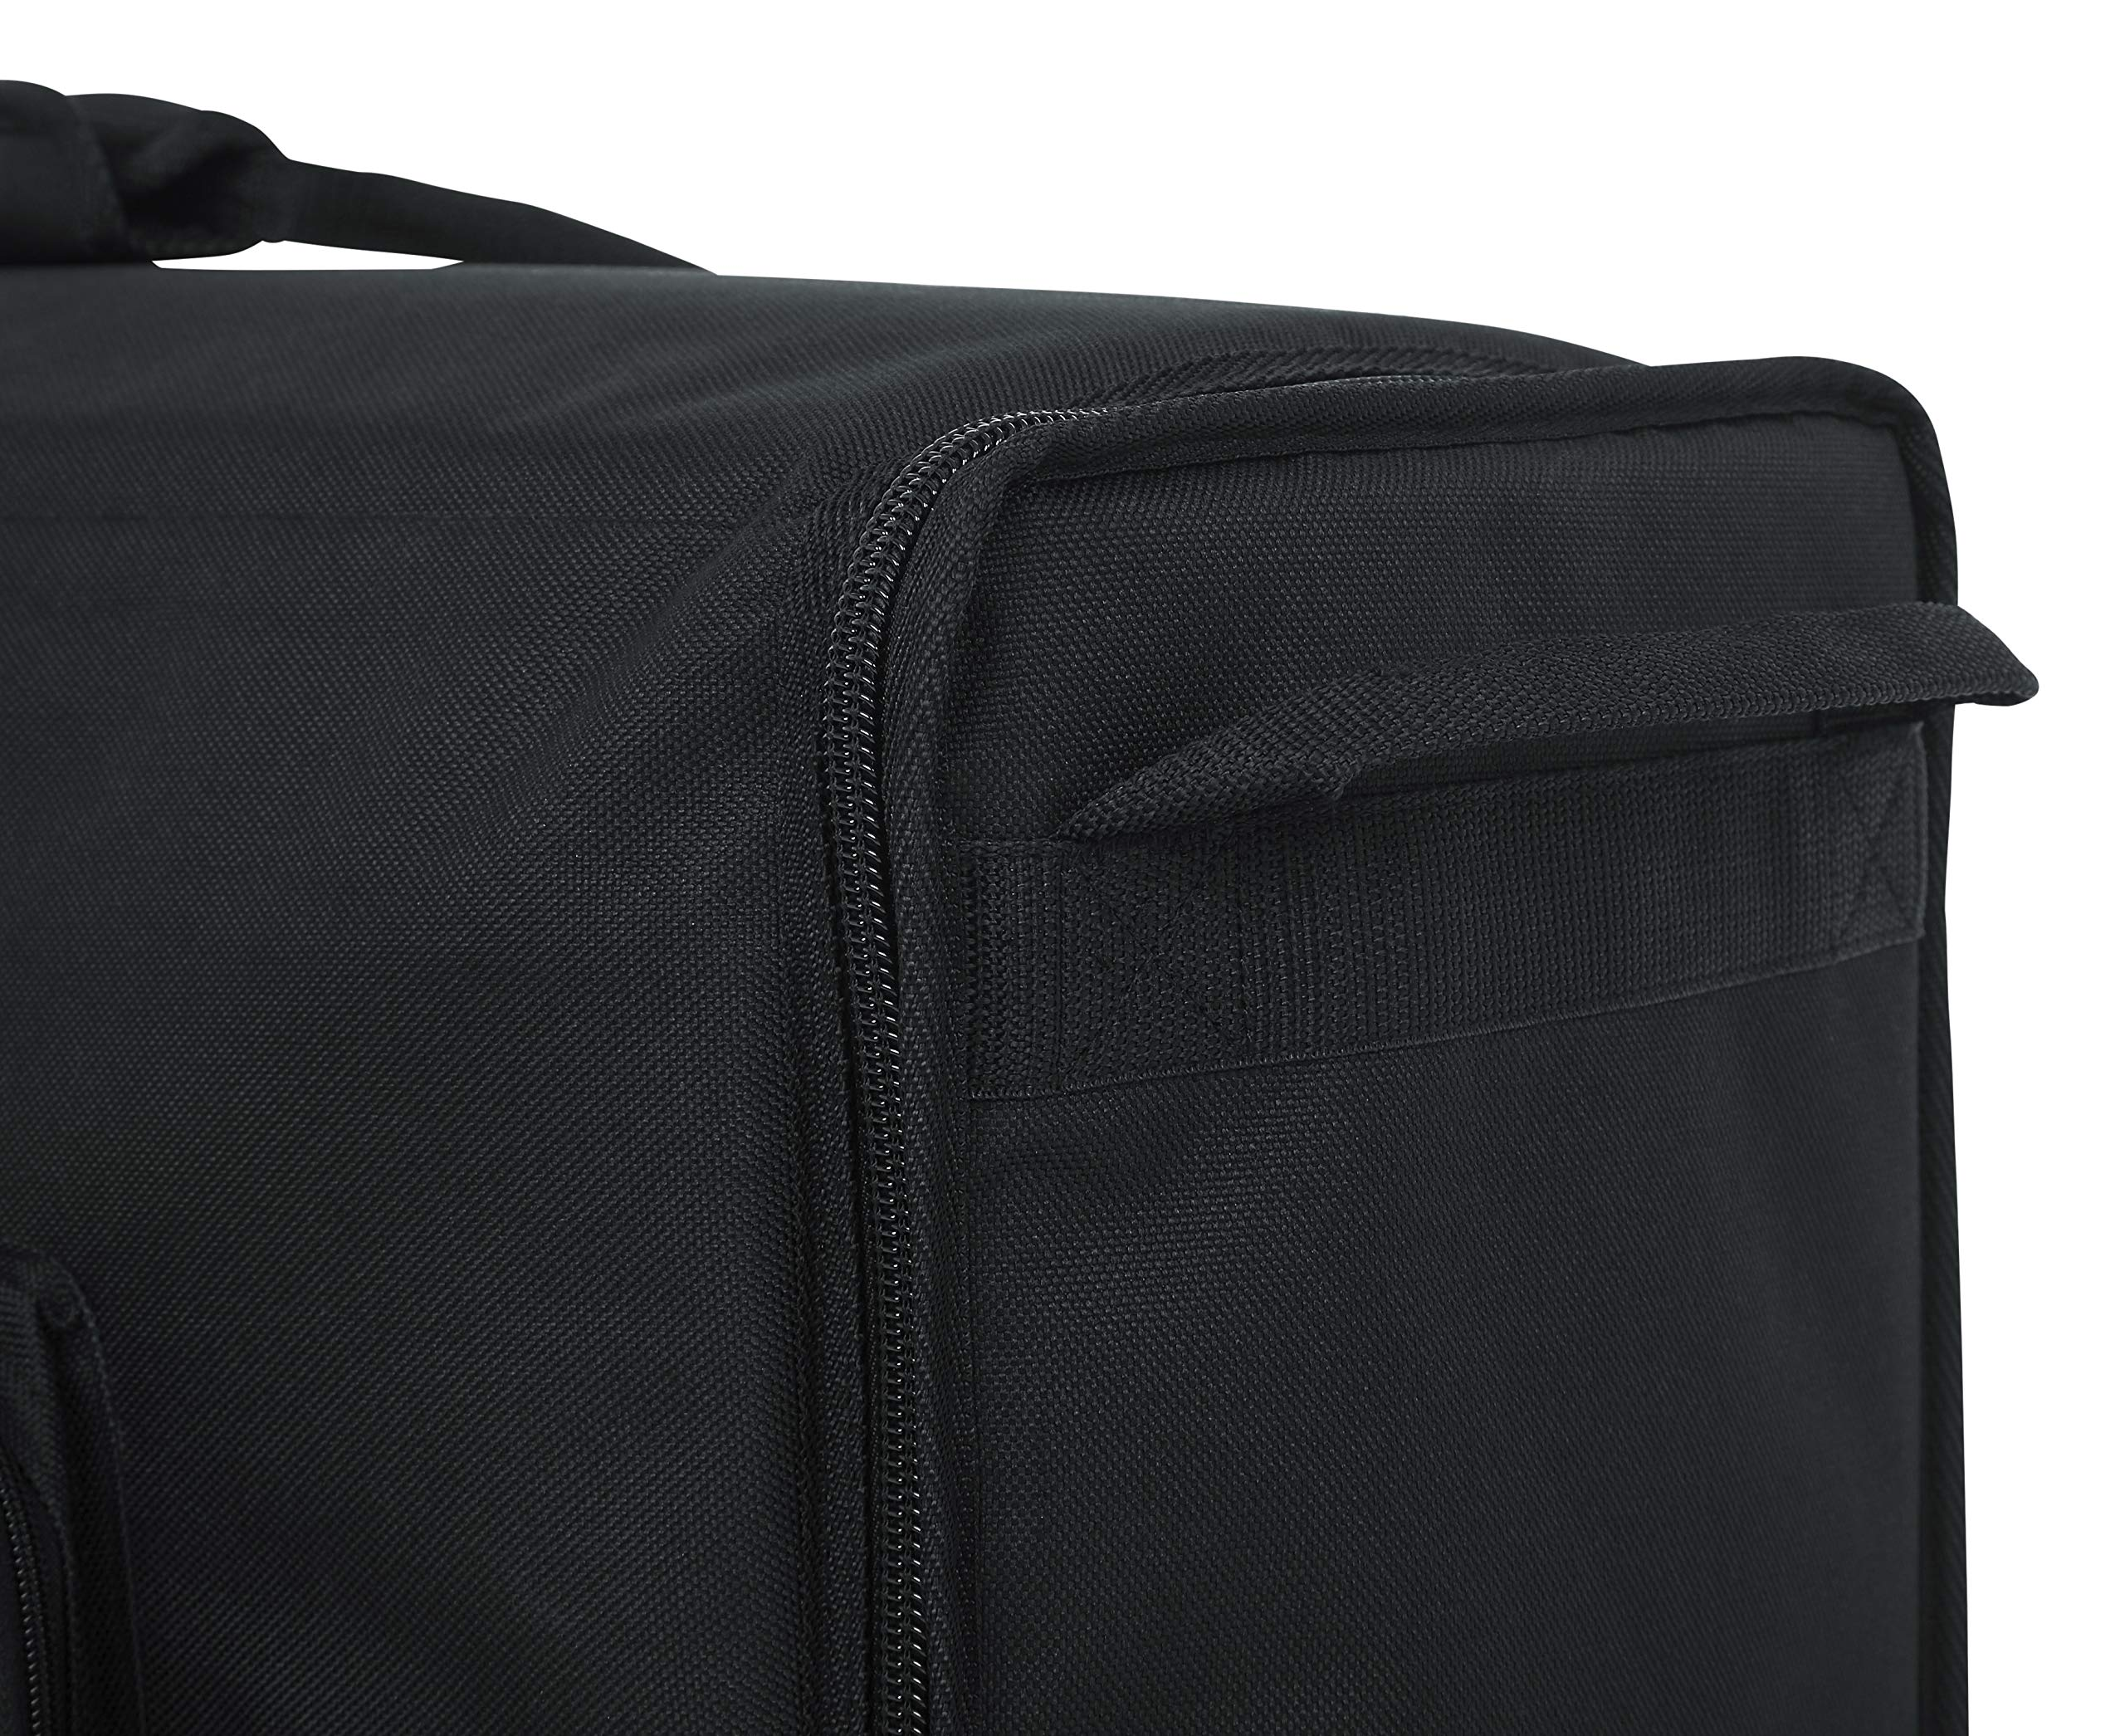 Gator Cases Padded Nylon Dual Carry Tote Bag for Transporting (2) LCD Screens, Monitors and TVs Between 27'' - 32''; (G-LCD-TOTE-MDX2) by Gator (Image #9)